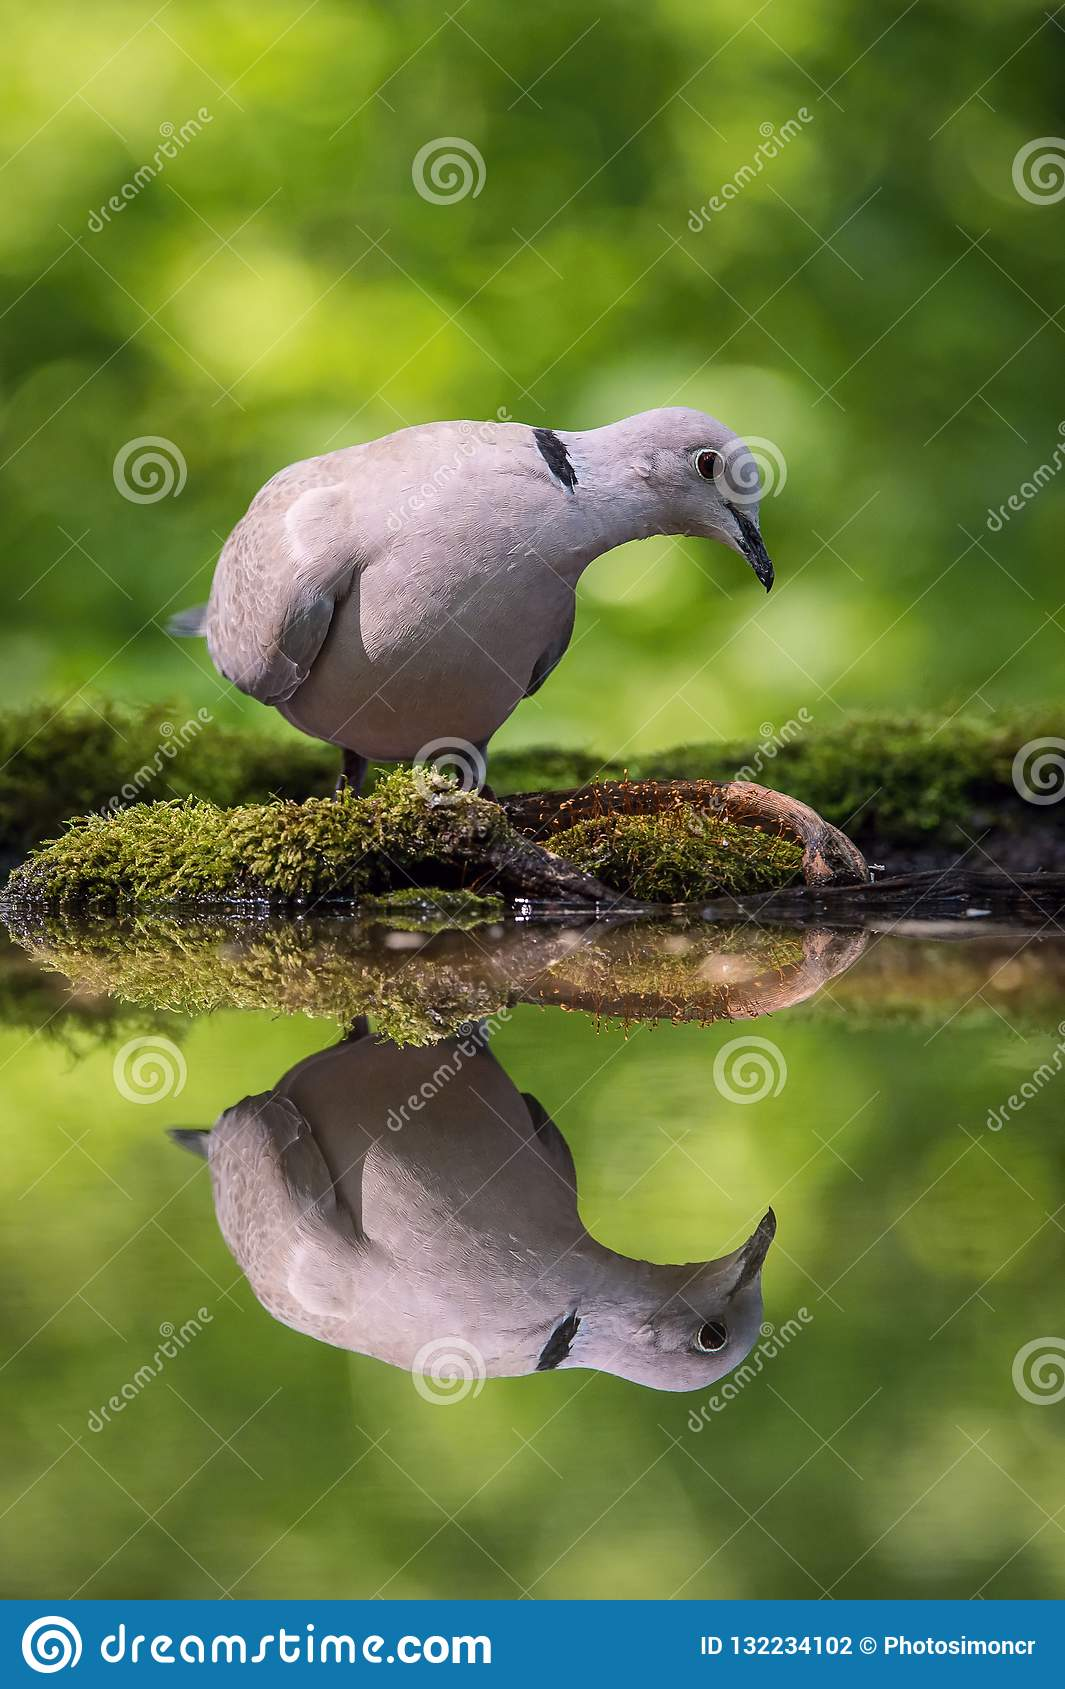 The Eurasian Collared Dove or Streptopelia decaocto is sitting at the waterhole